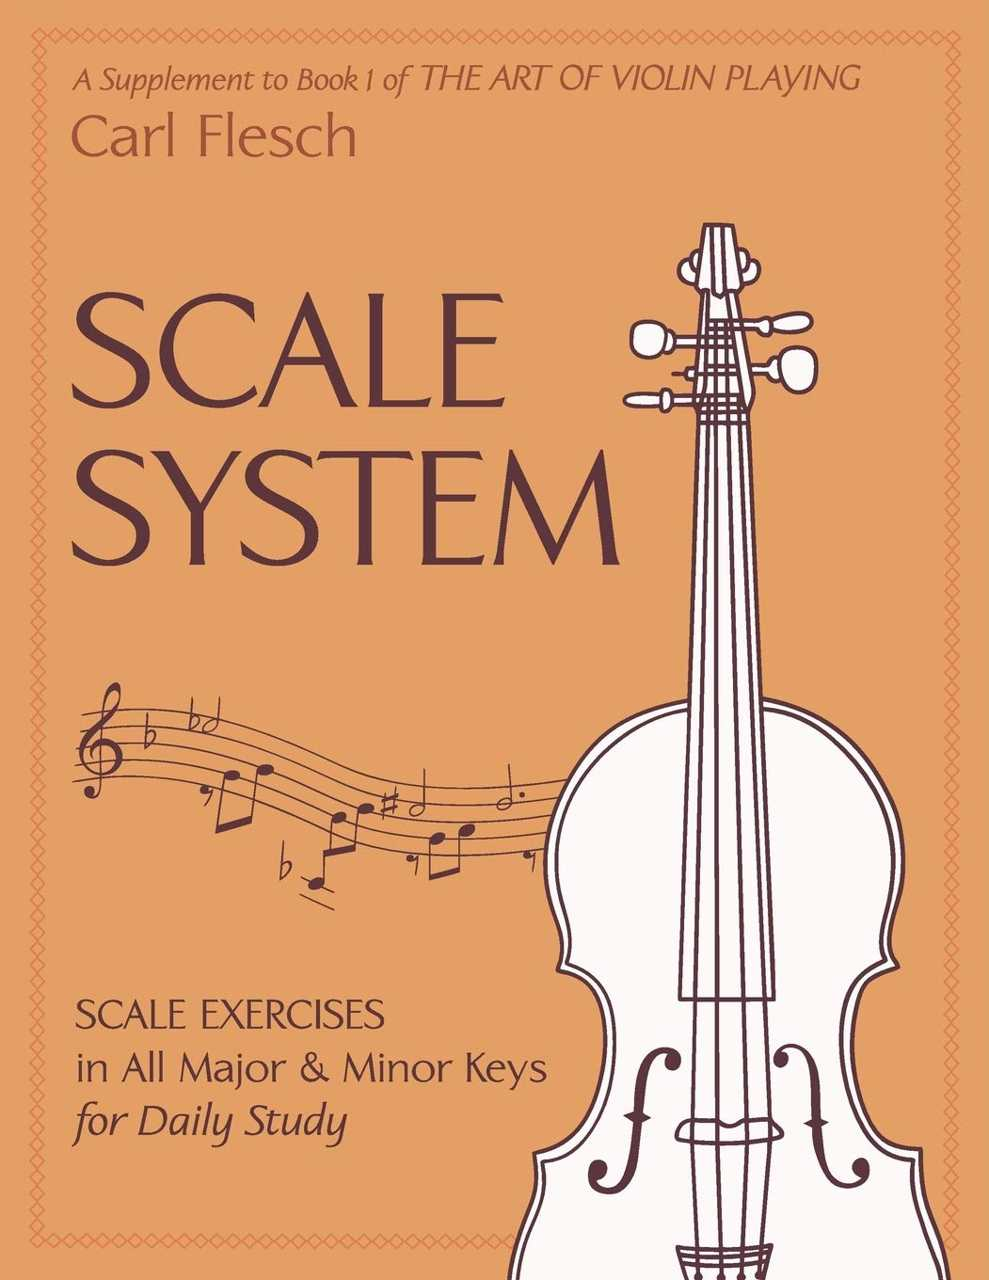 Best Violin Books - Scale System Exercises in All Major and Minor Keys for Daily Study by Carl Flesch